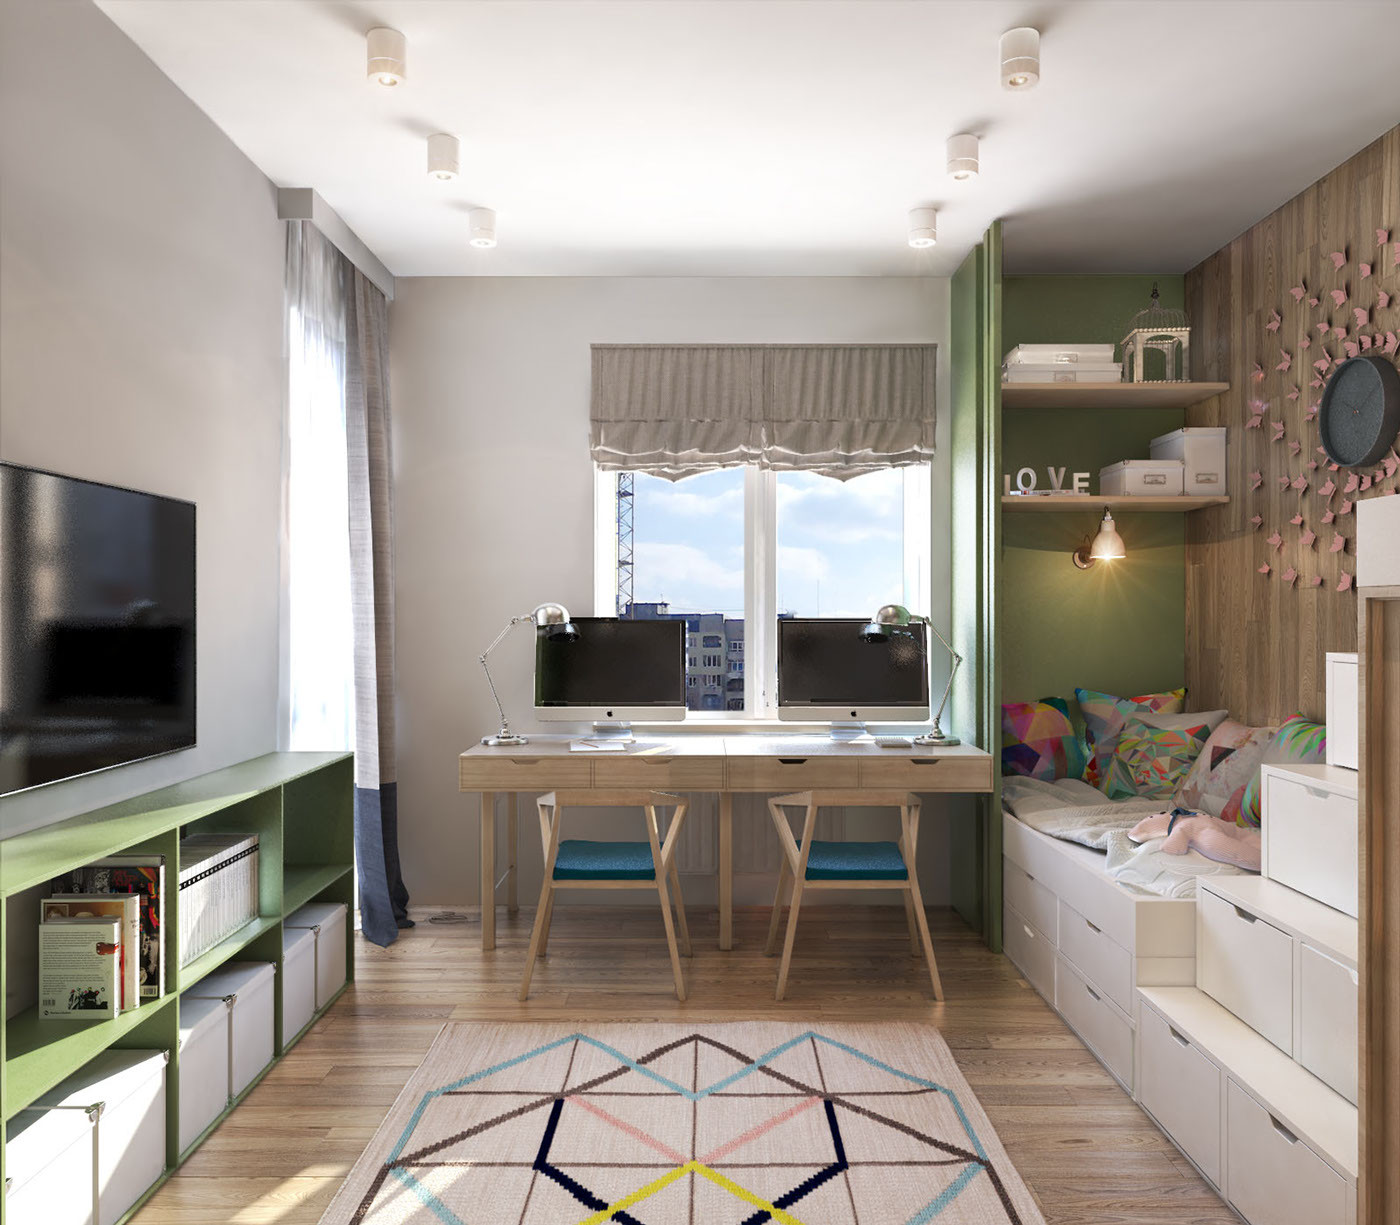 Best ideas about Modern Kids Room . Save or Pin A Contemporary Apartment with Lots of Open Space Now.